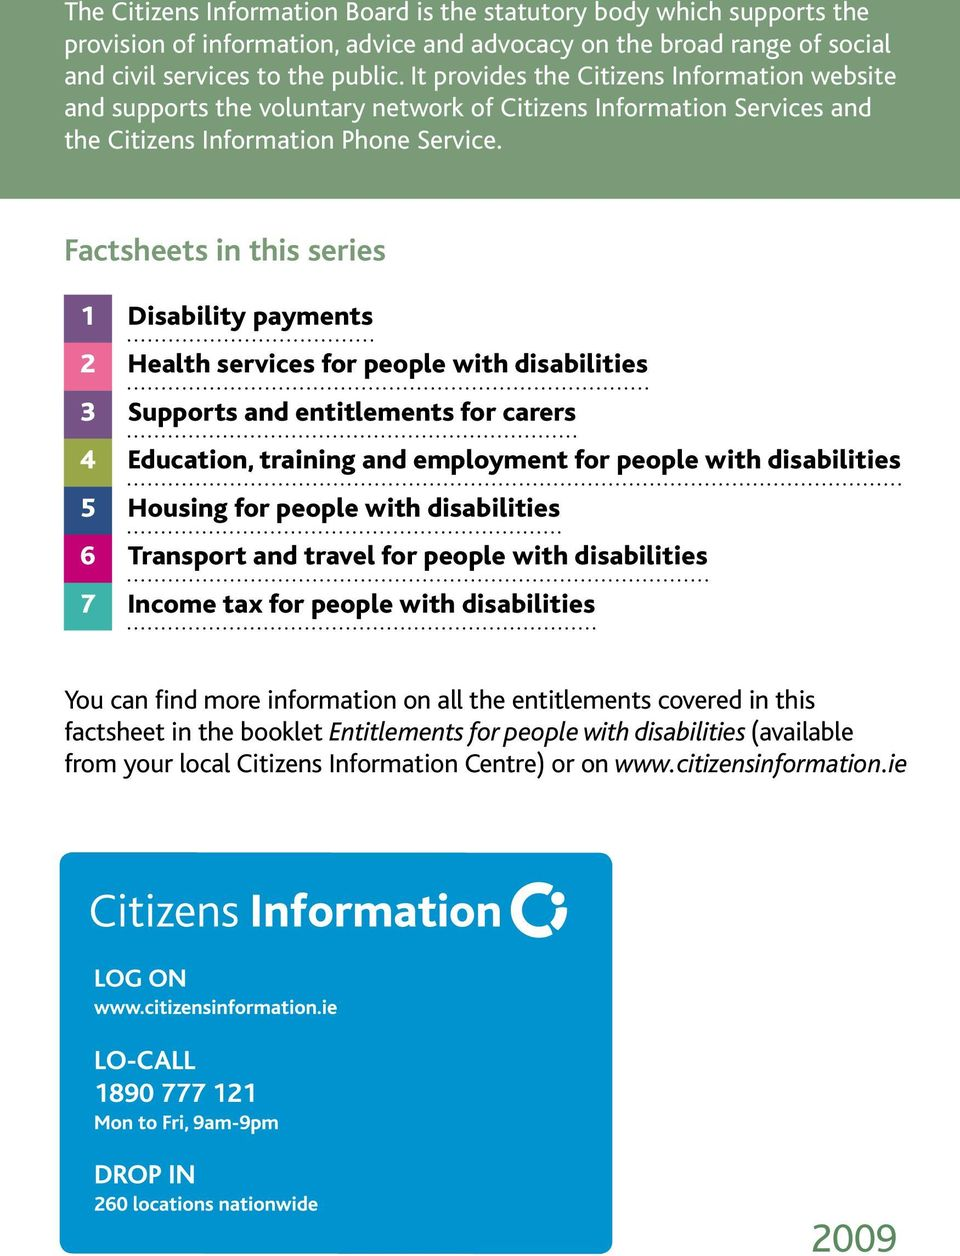 Factsheets in this series 1 Disability payments 2 Health services for people with disabilities 3 Supports and entitlements for carers 4 Education, training and employment for people with disabilities